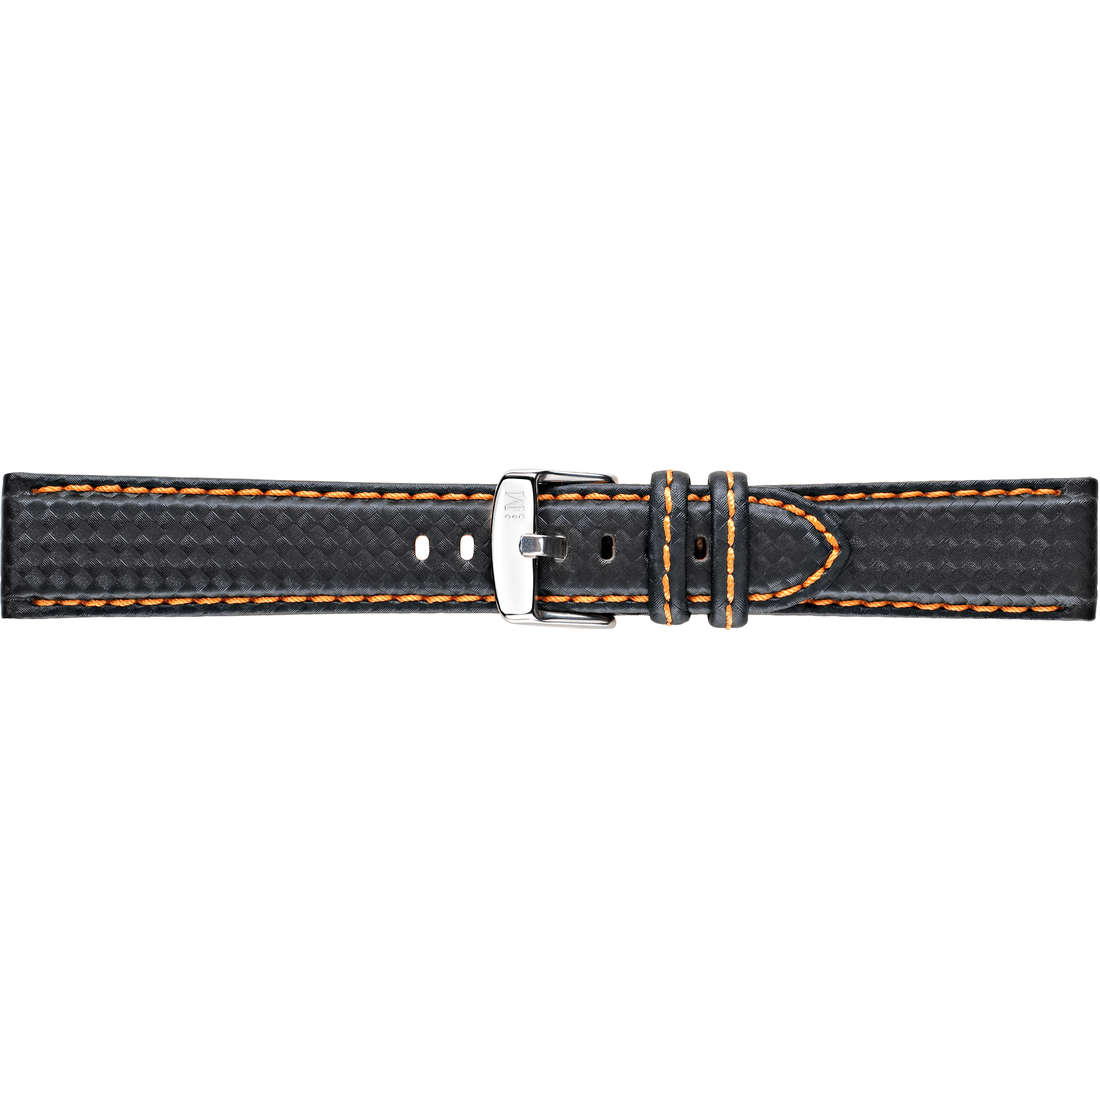 watch watch bands watch straps man Morellato Linea Sport A01U3586977886CR18